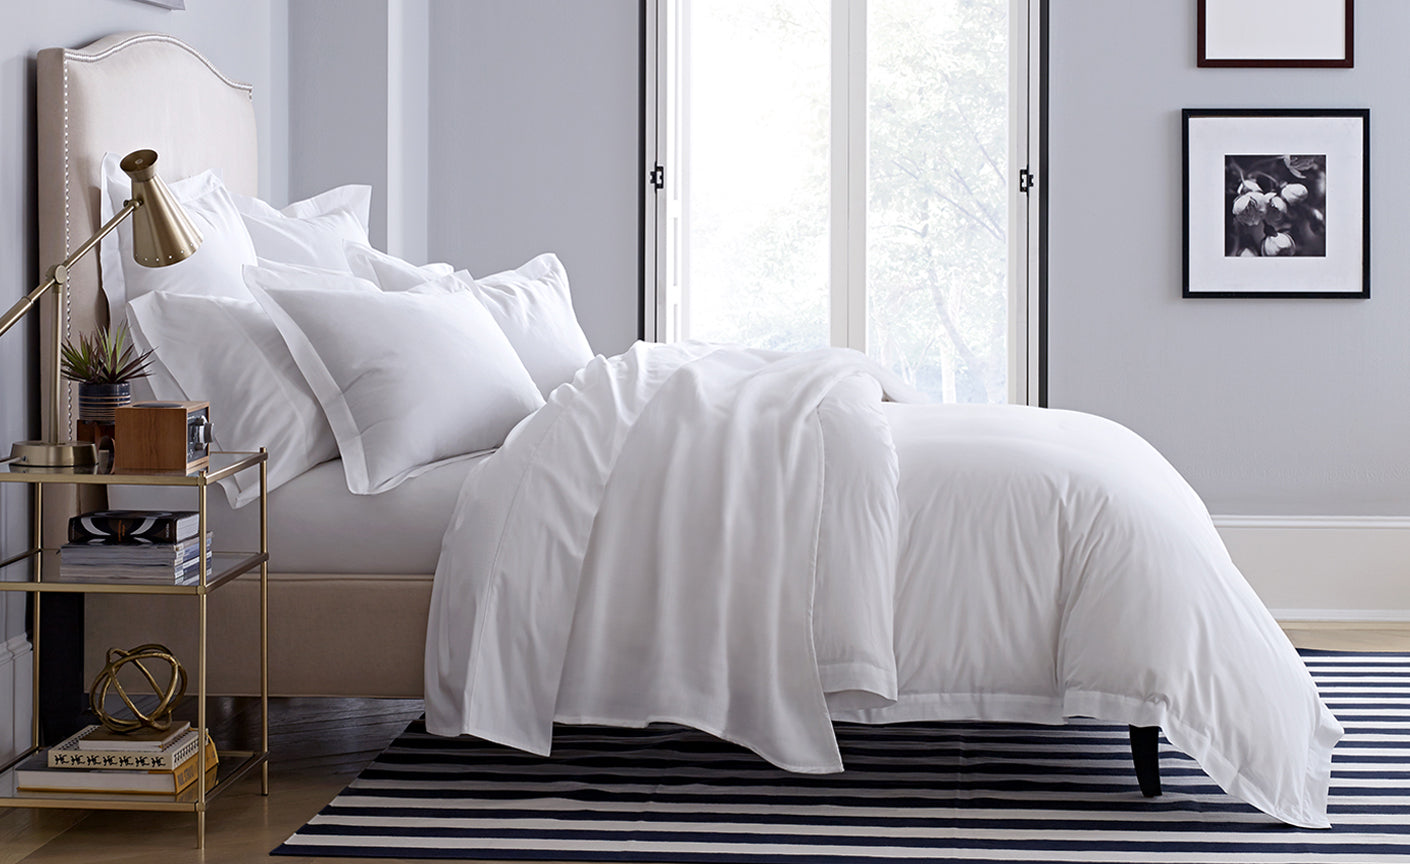 What is a Duvet Cover? Choosing a Duvet vs Comforter: Which is ... : quilt cover vs comforter - Adamdwight.com